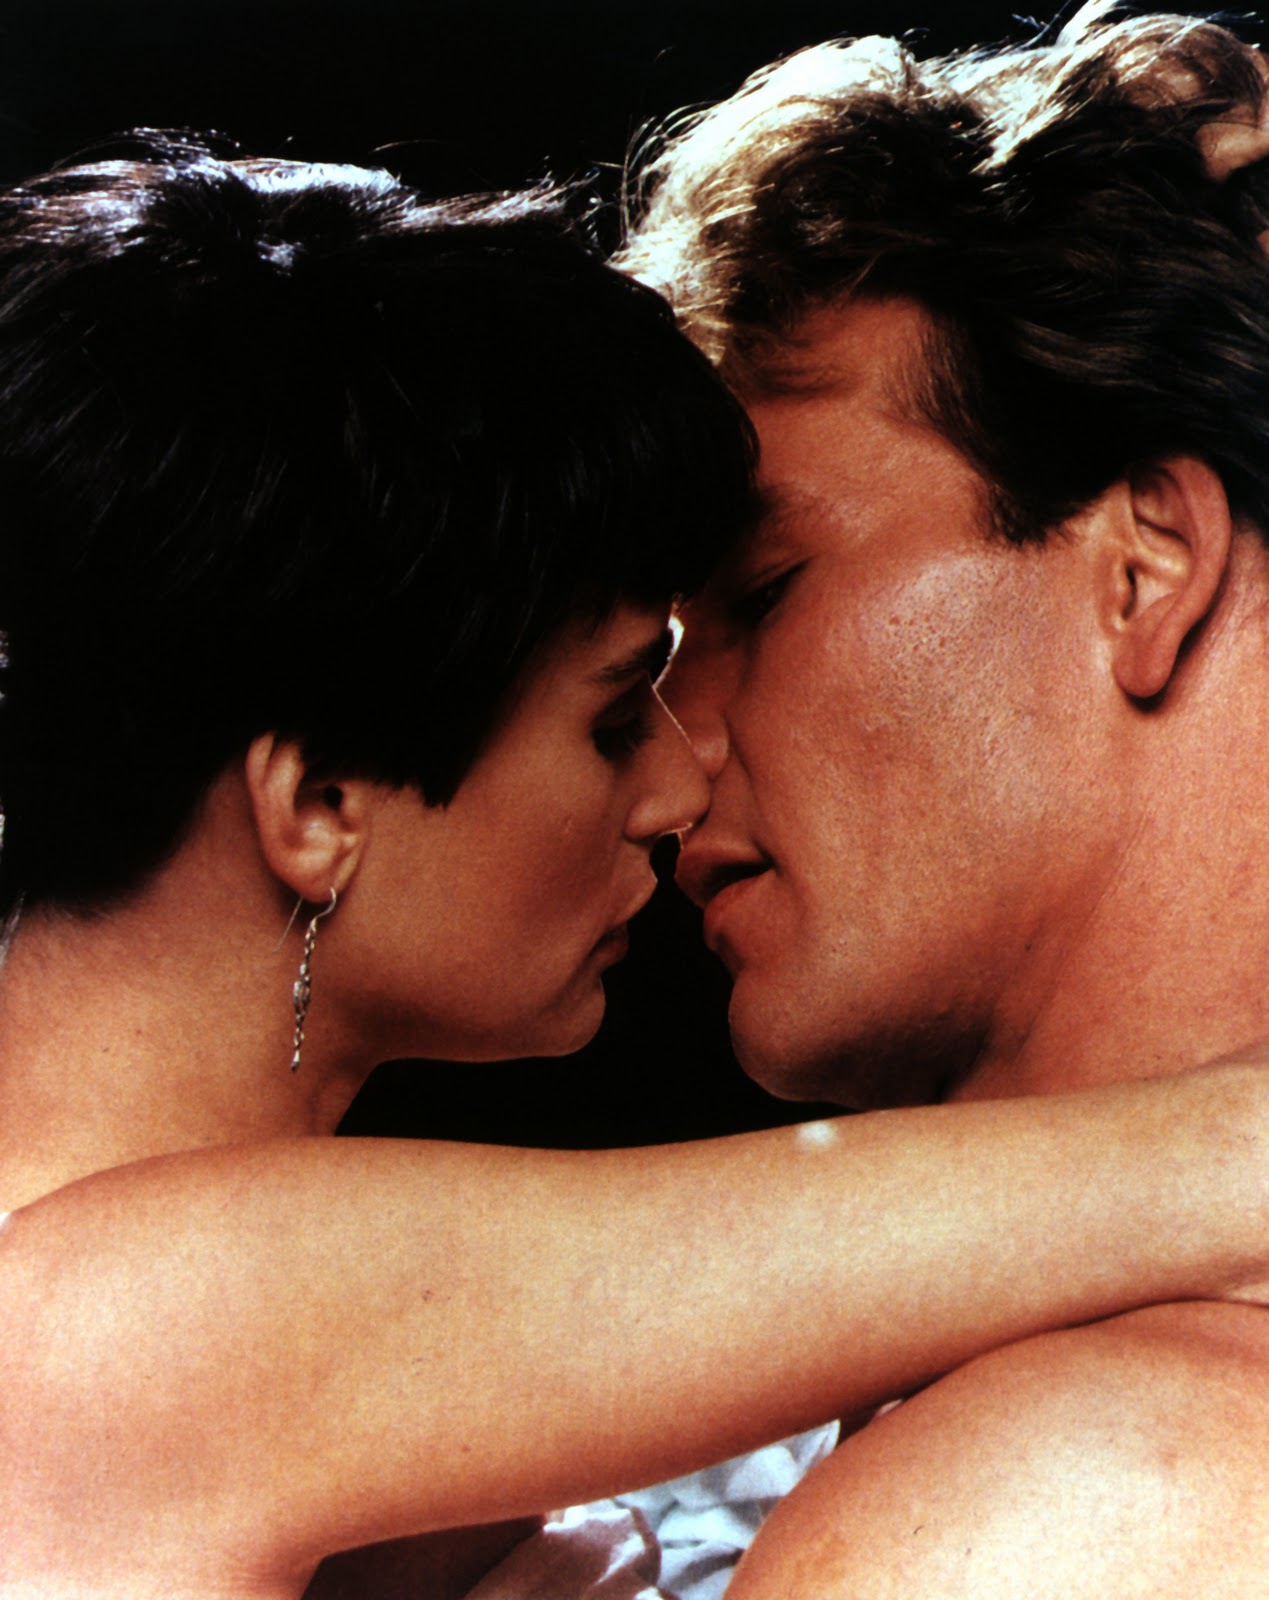 Demi Moore And Patrick Swayze   Ghost Movie Photo 3